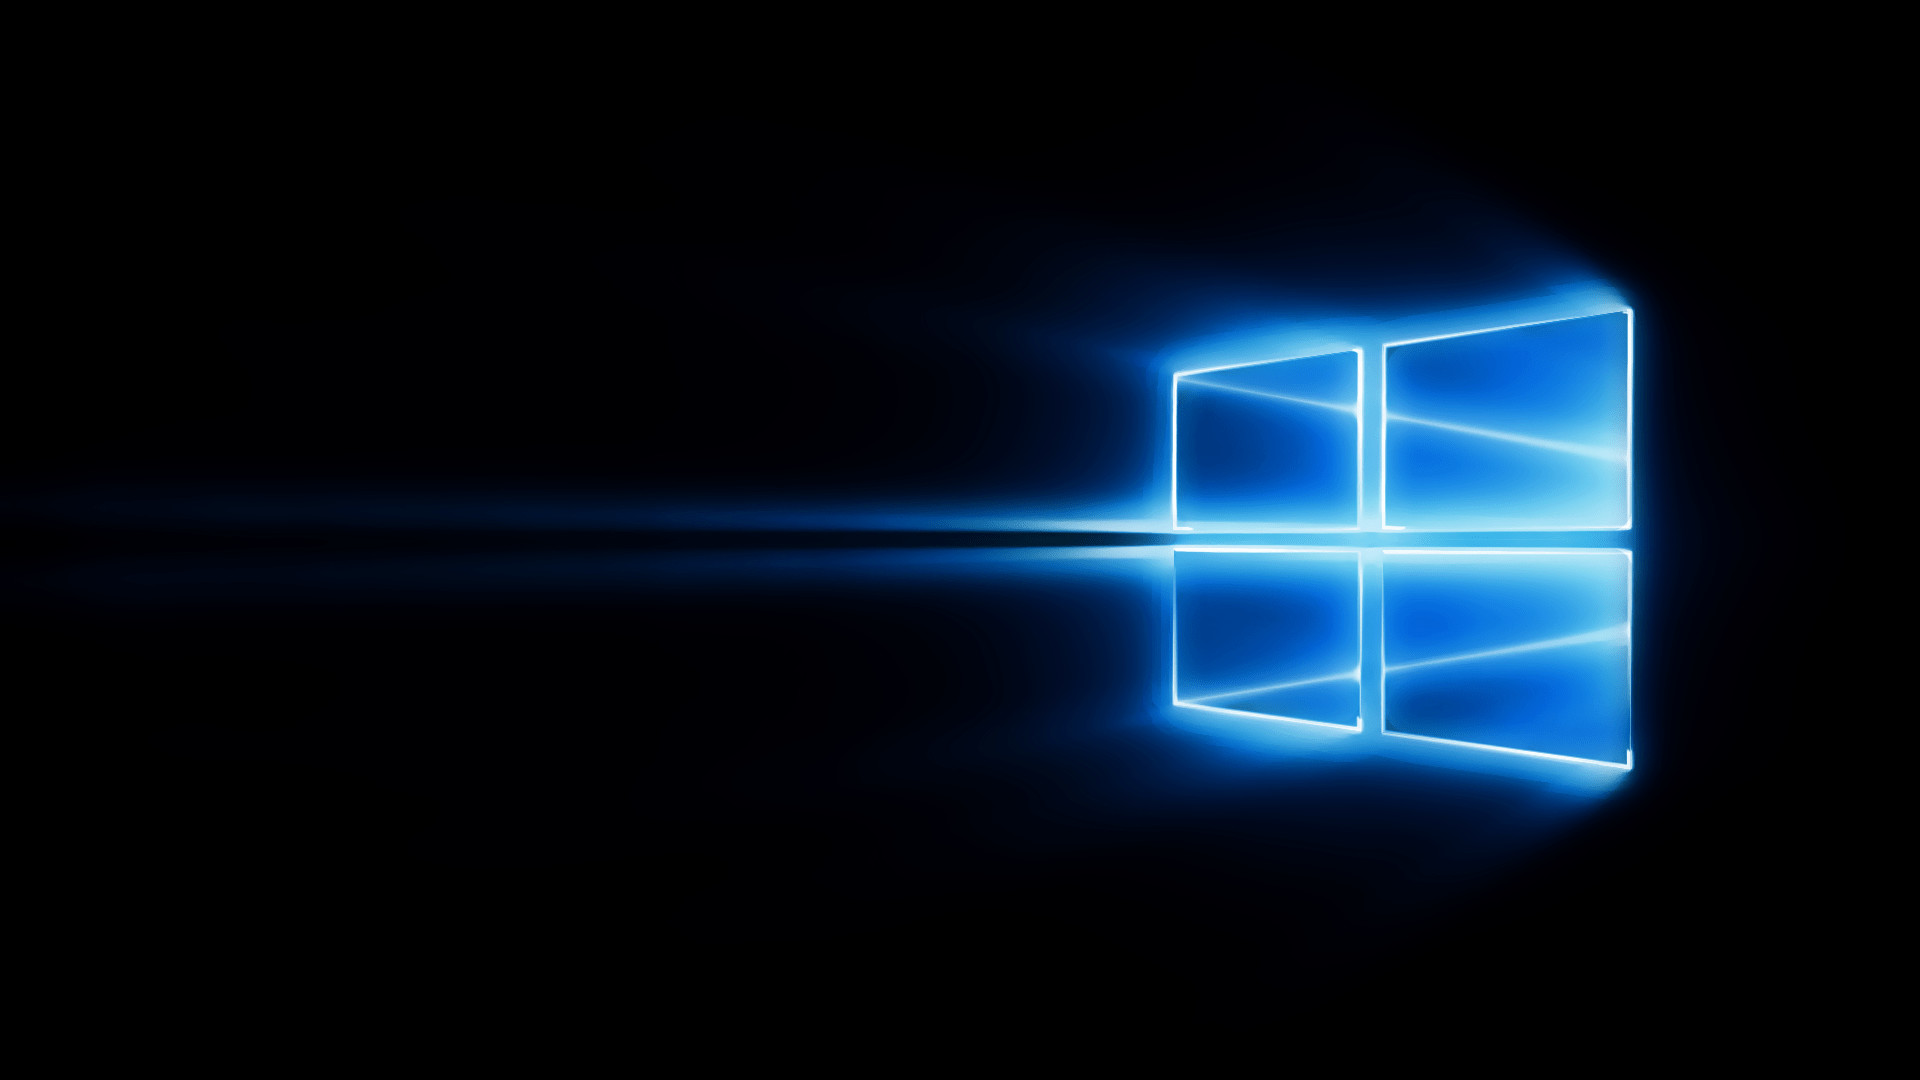 Gallery of microsoft windows 10 gray background wallpaper best hd wallpapers